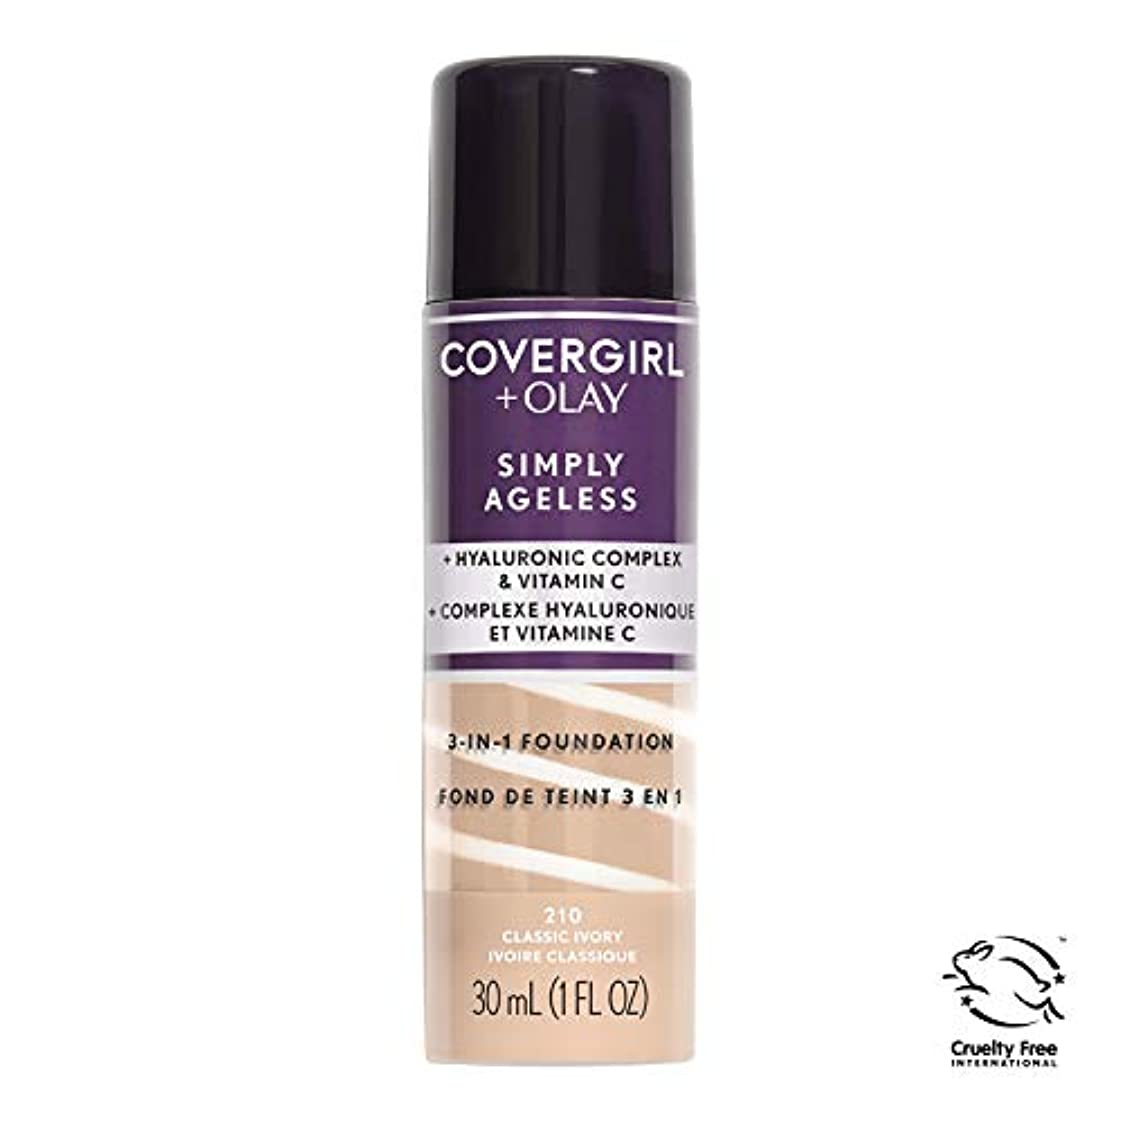 飽和するクラウド懐疑論COVERGIRL Simply Ageless 3-in-1 Liquid Foundation - Classic Ivory 210 (並行輸入品)